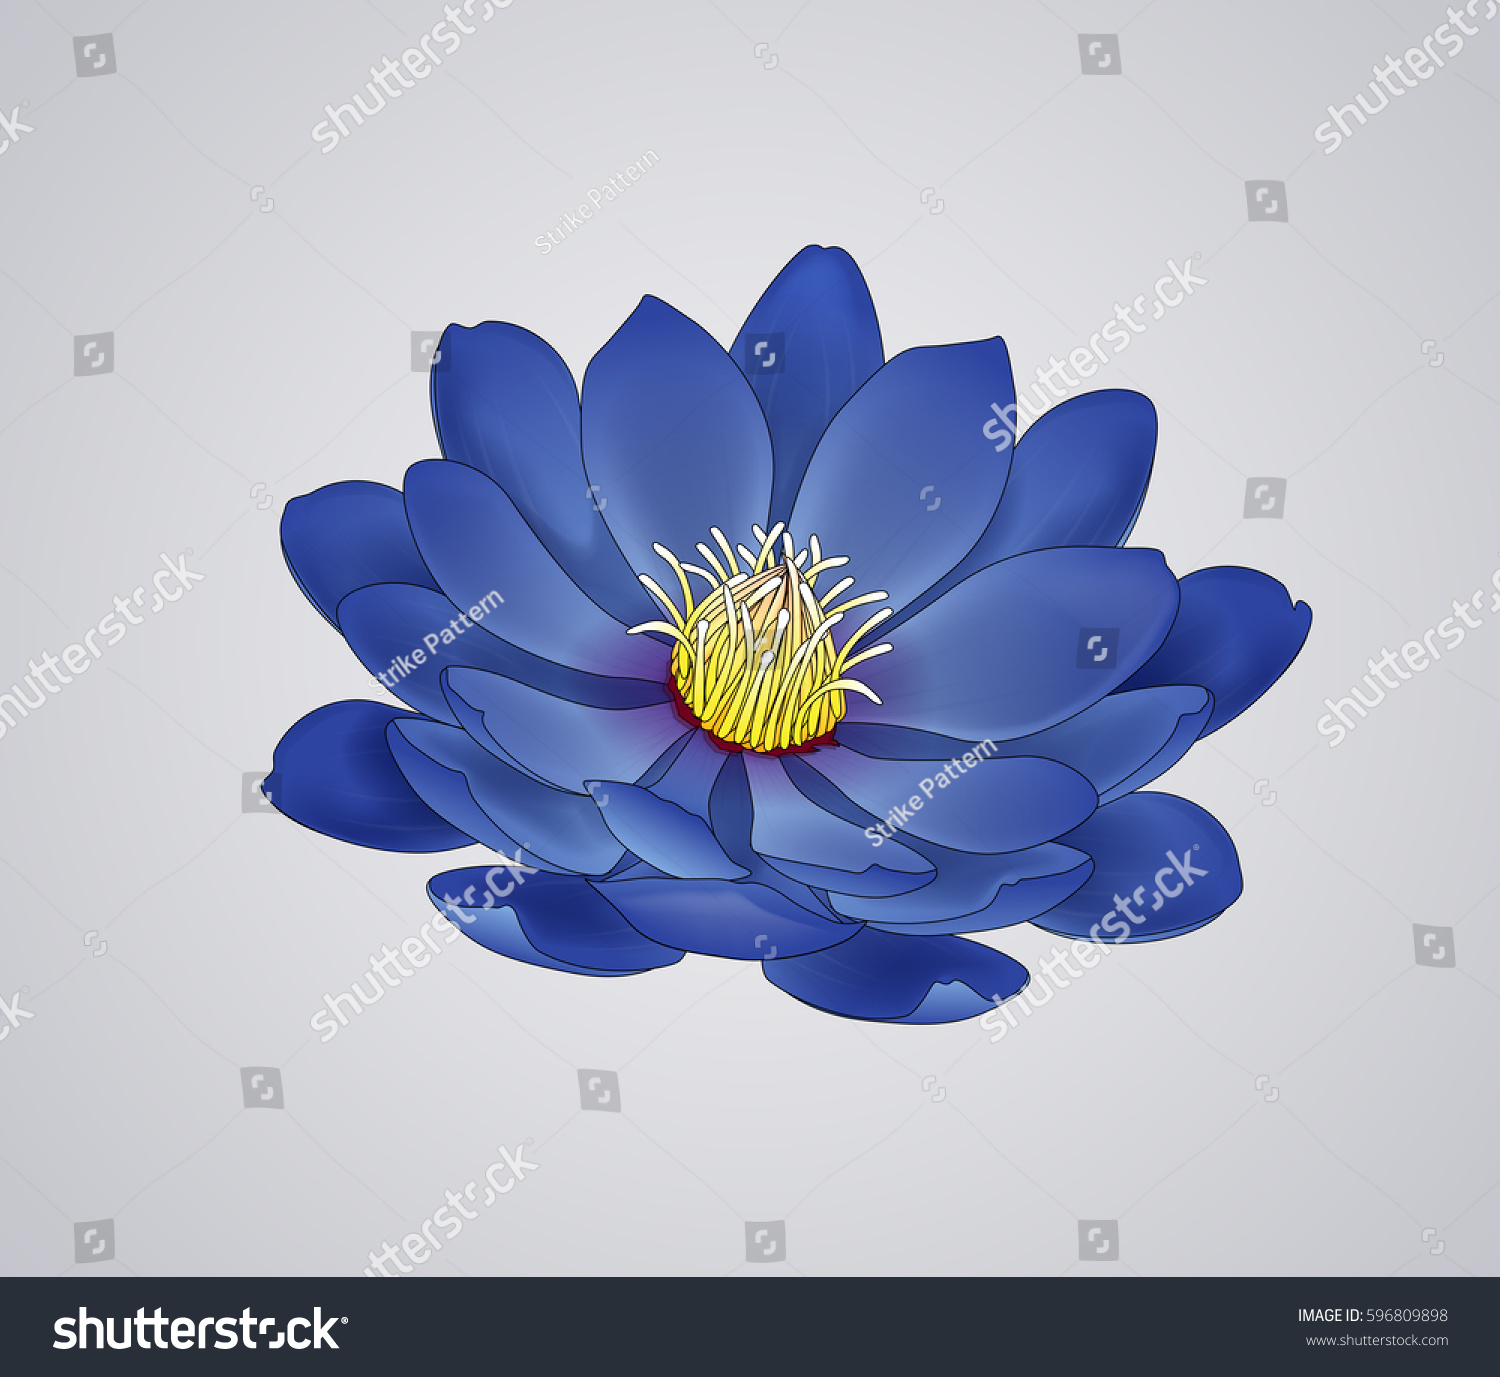 Blossoming beautiful blue waterlily lotus flower stock vector blossoming beautiful blue waterlily or lotus flower draw isolated izmirmasajfo